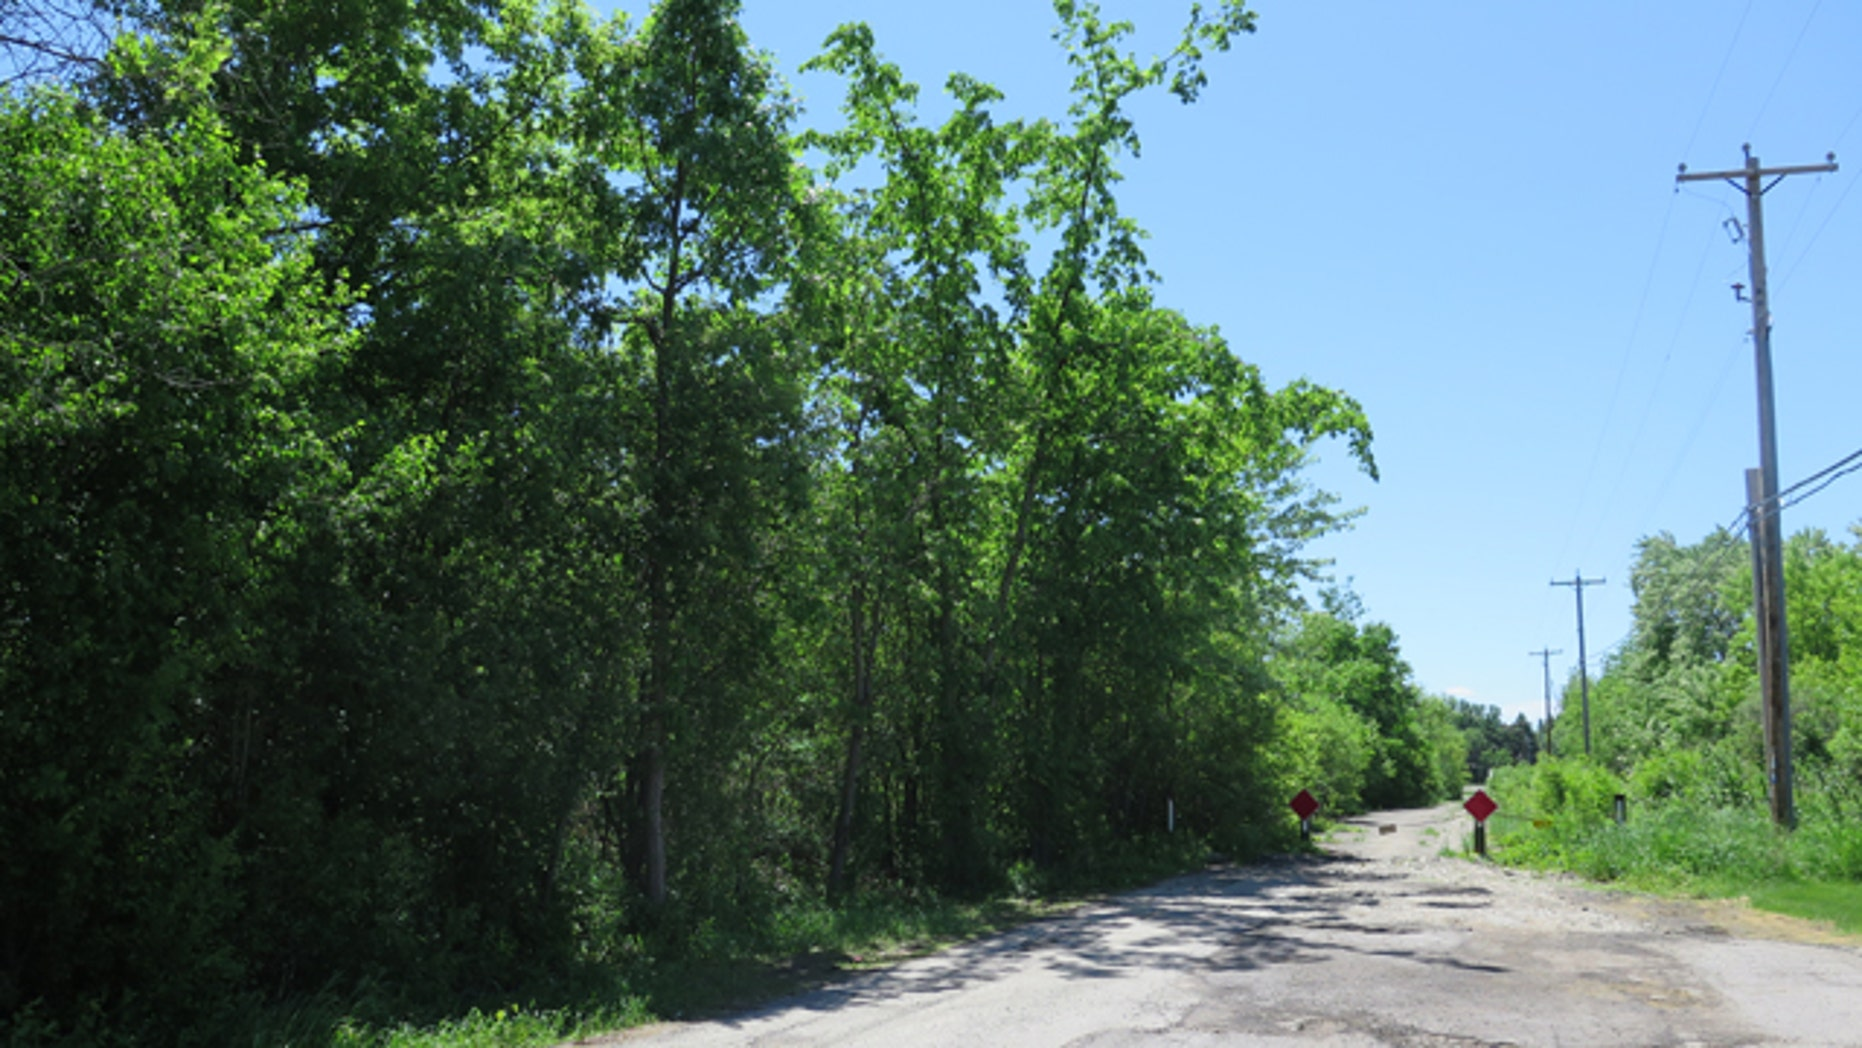 June 3, 2014: This photo shows the site in Waukesha, Wis., where a bicyclist found a 12-year-old girl who had 19 stab wounds. Two 12-year-old girls are accused of stabbing the girl in the woods to please a fictional character they learned about online. (AP Photo/Carrie Antlfinger, File)